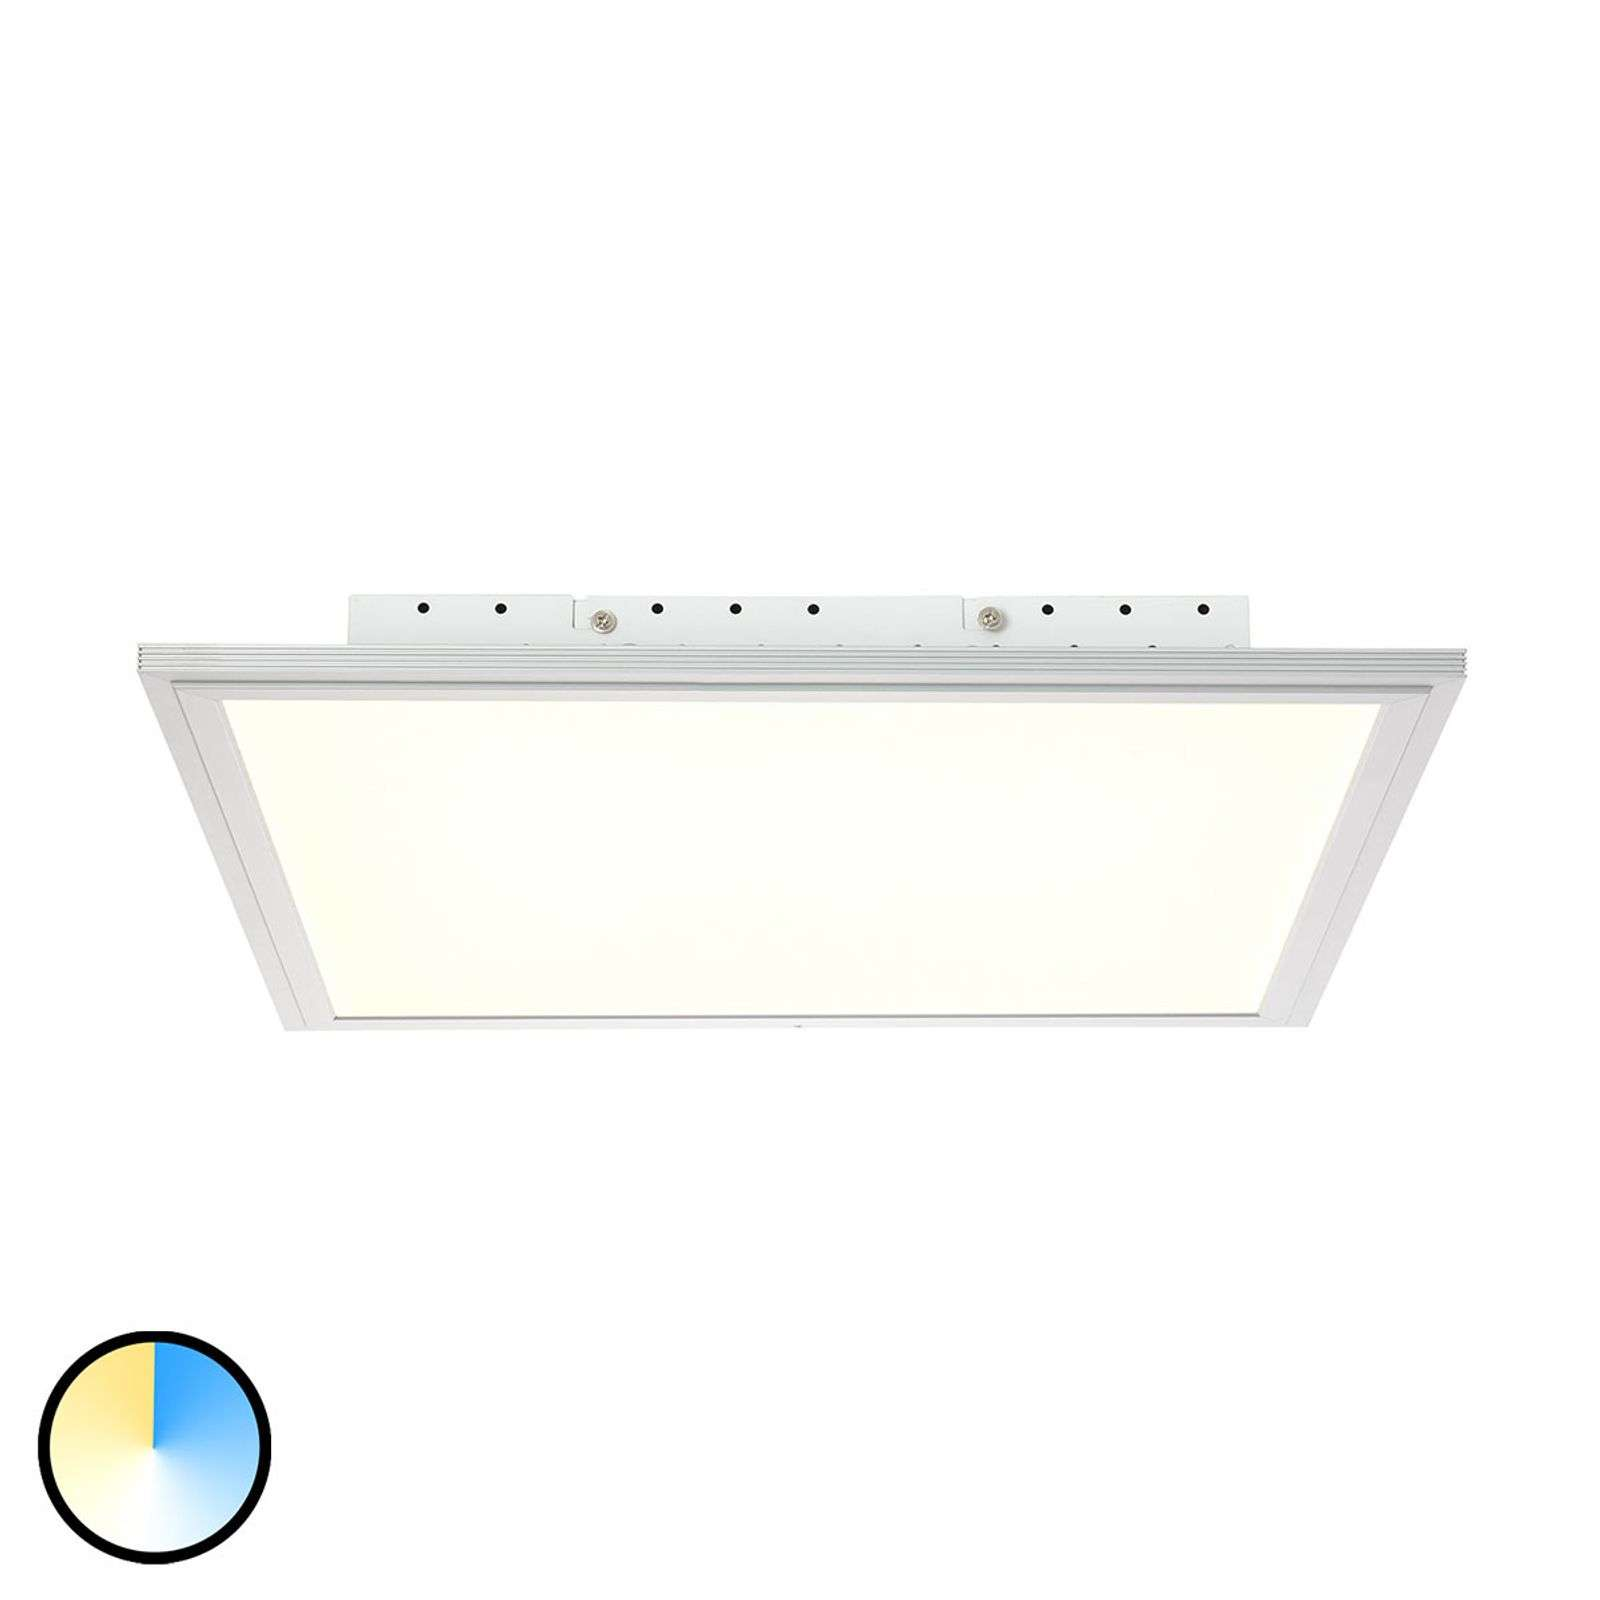 Brilliant WiZ Flat plafoniera LED - 42 cm